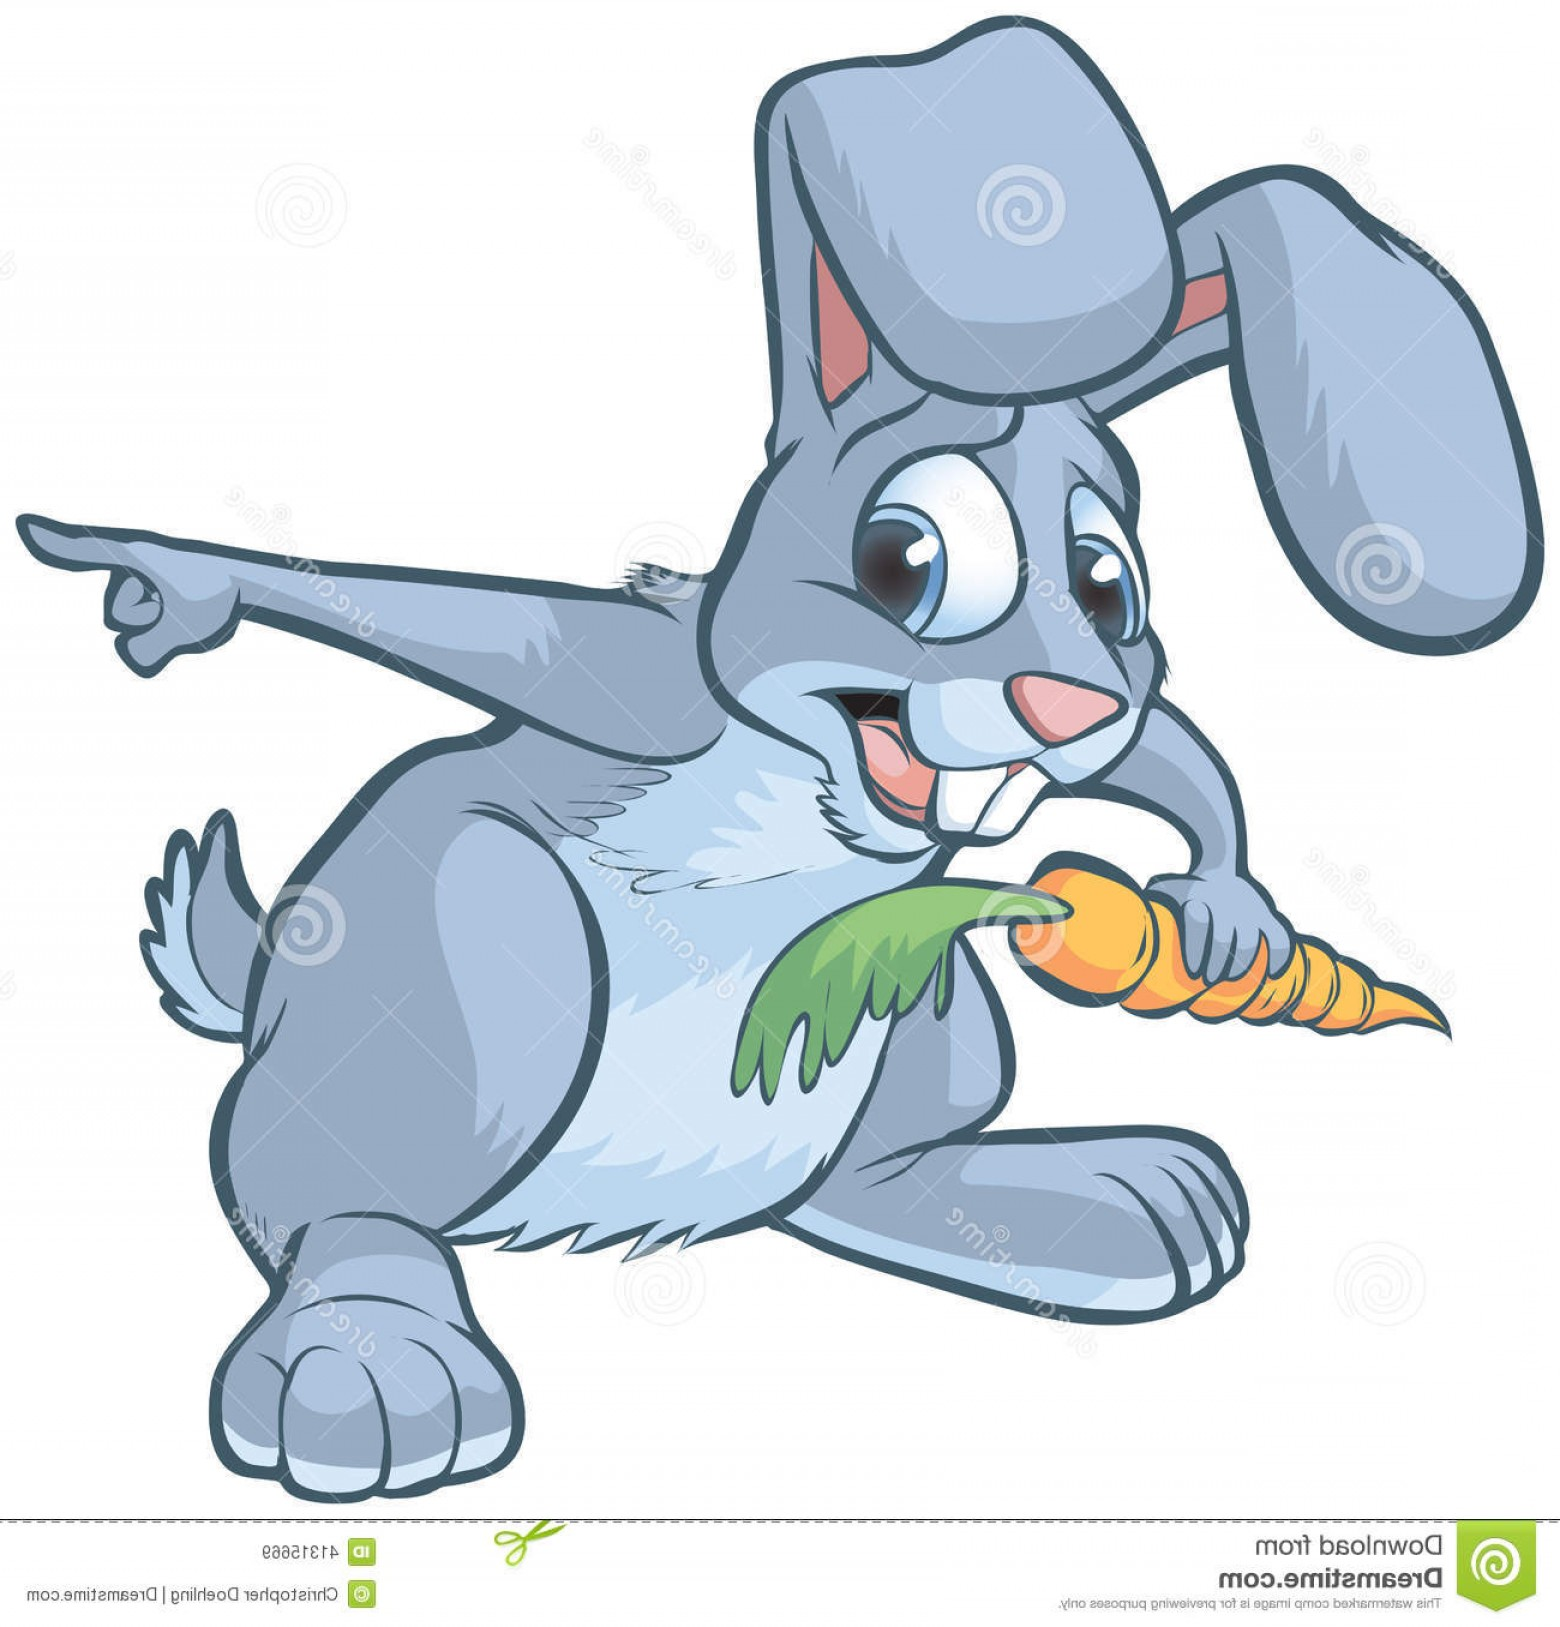 Animated Bunny Face Vector: Stock Illustration Scared Cartoon Rabbit Pointing Vector Clip Art Gray Bunny Holding Carrot To Right Image